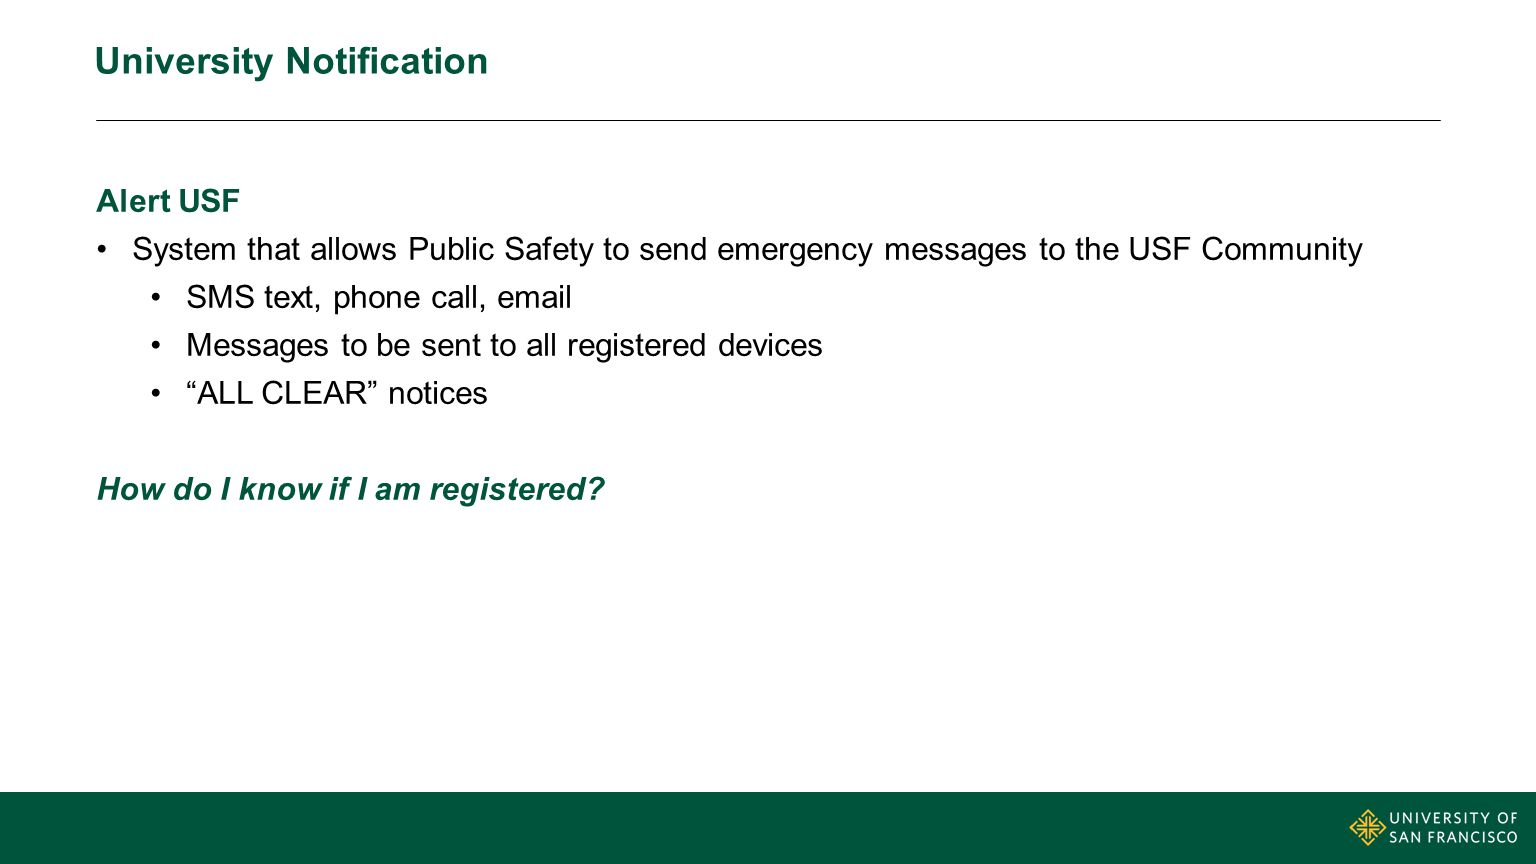 University Notification Alert USF System that allows Public Safety to send emergency messages to the USF Community SMS text, phone call, email Message